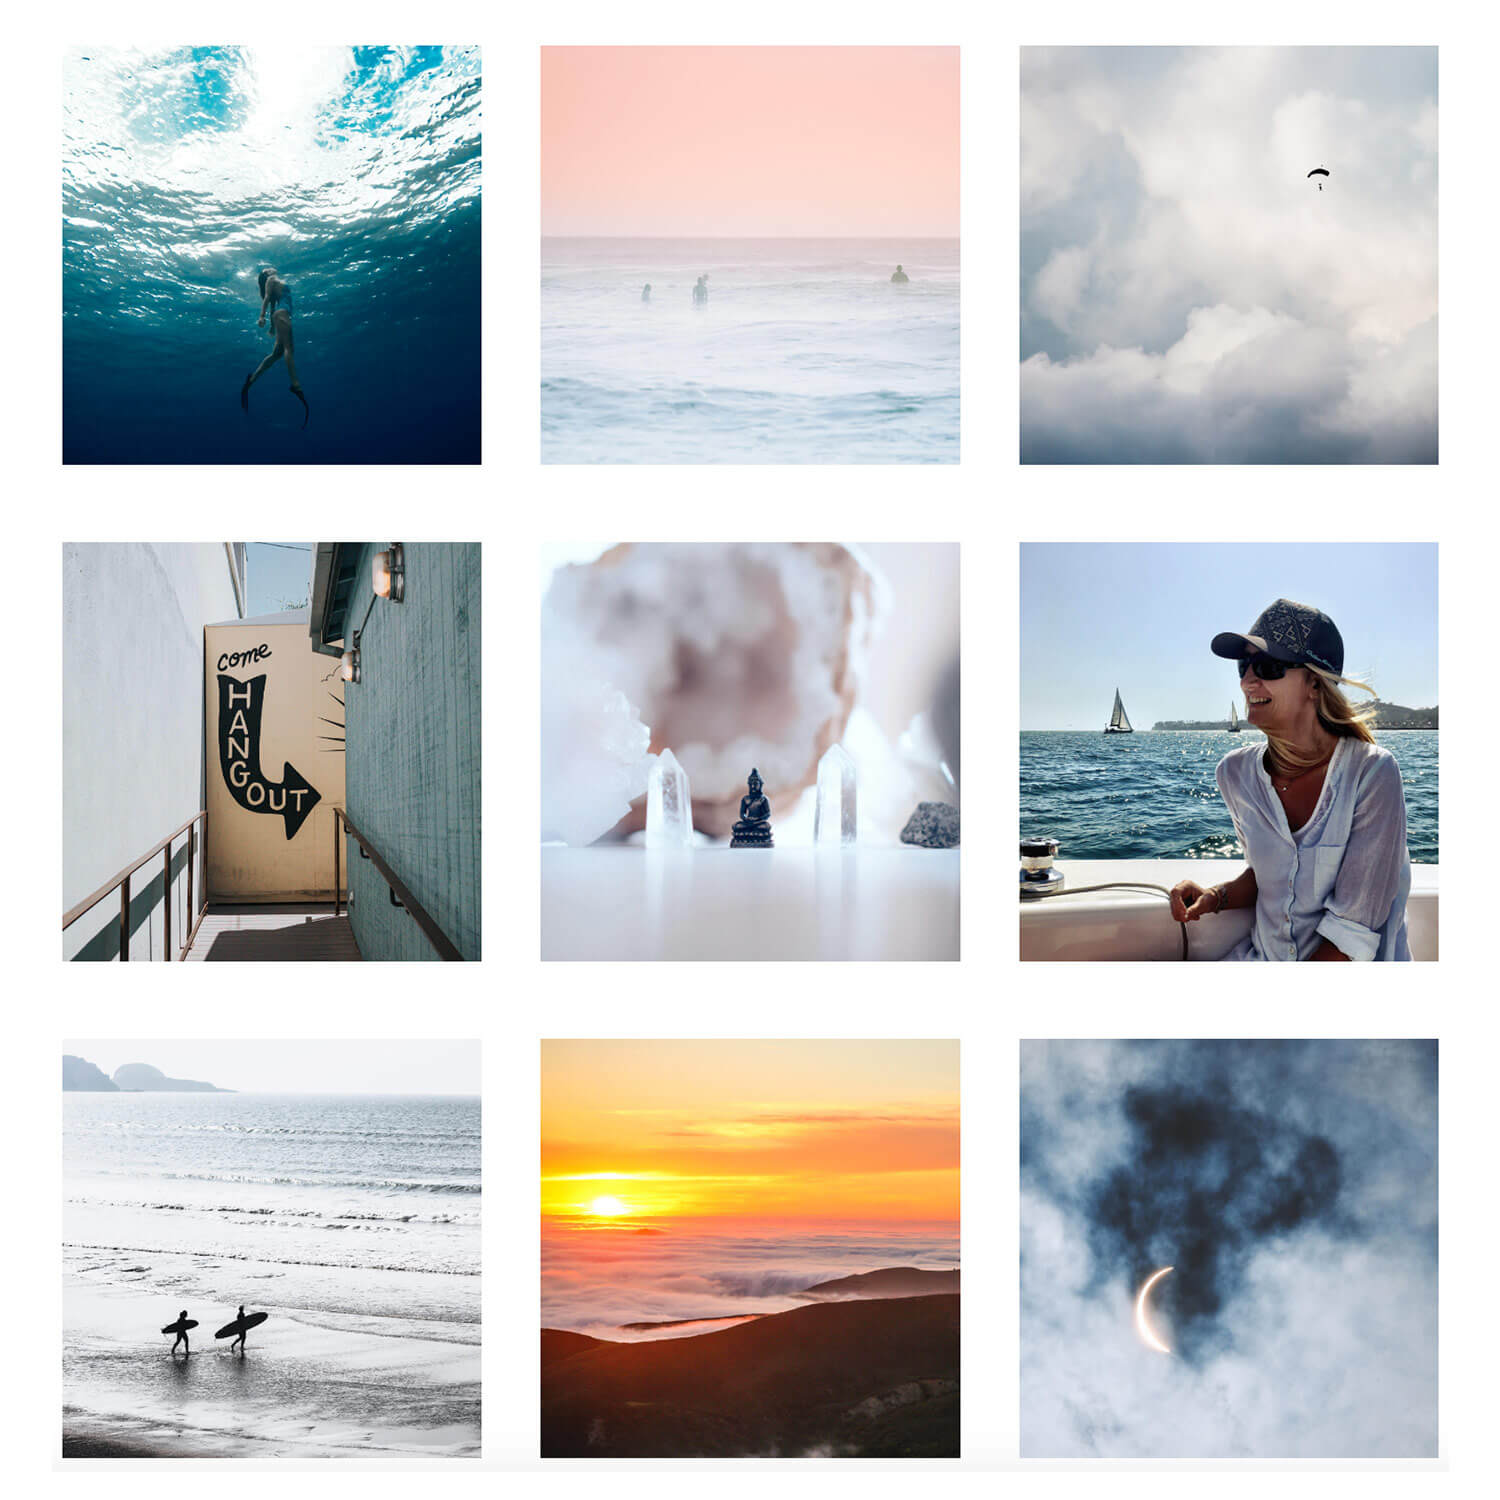 Example of Squarespace code block grid using hover effects on images. By The Qurious Effect, a Squarespace website design studio.